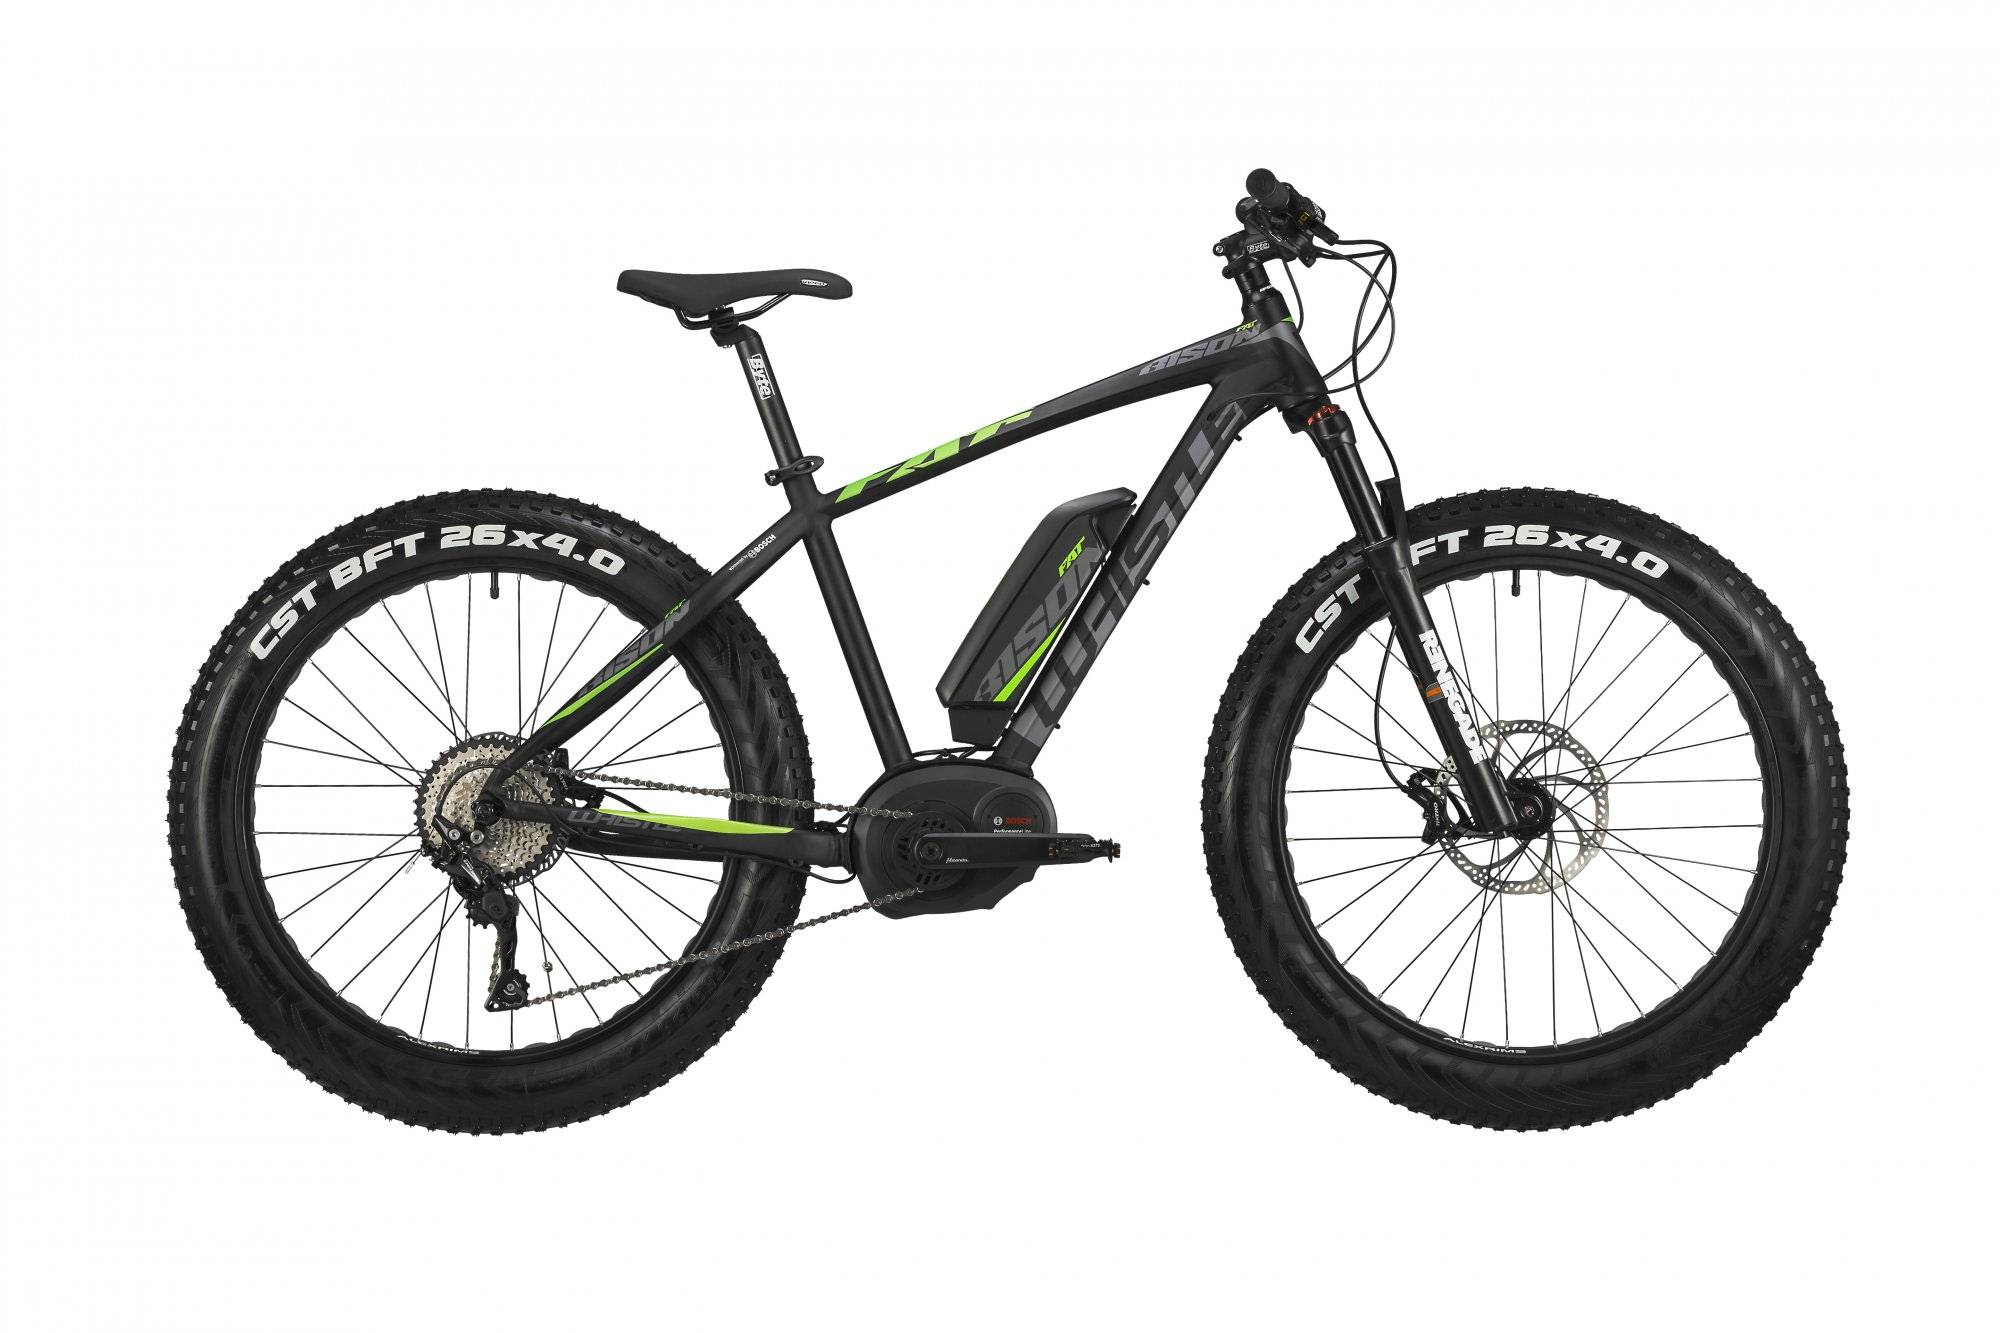 Whistle Fat Bison 500Wh 26